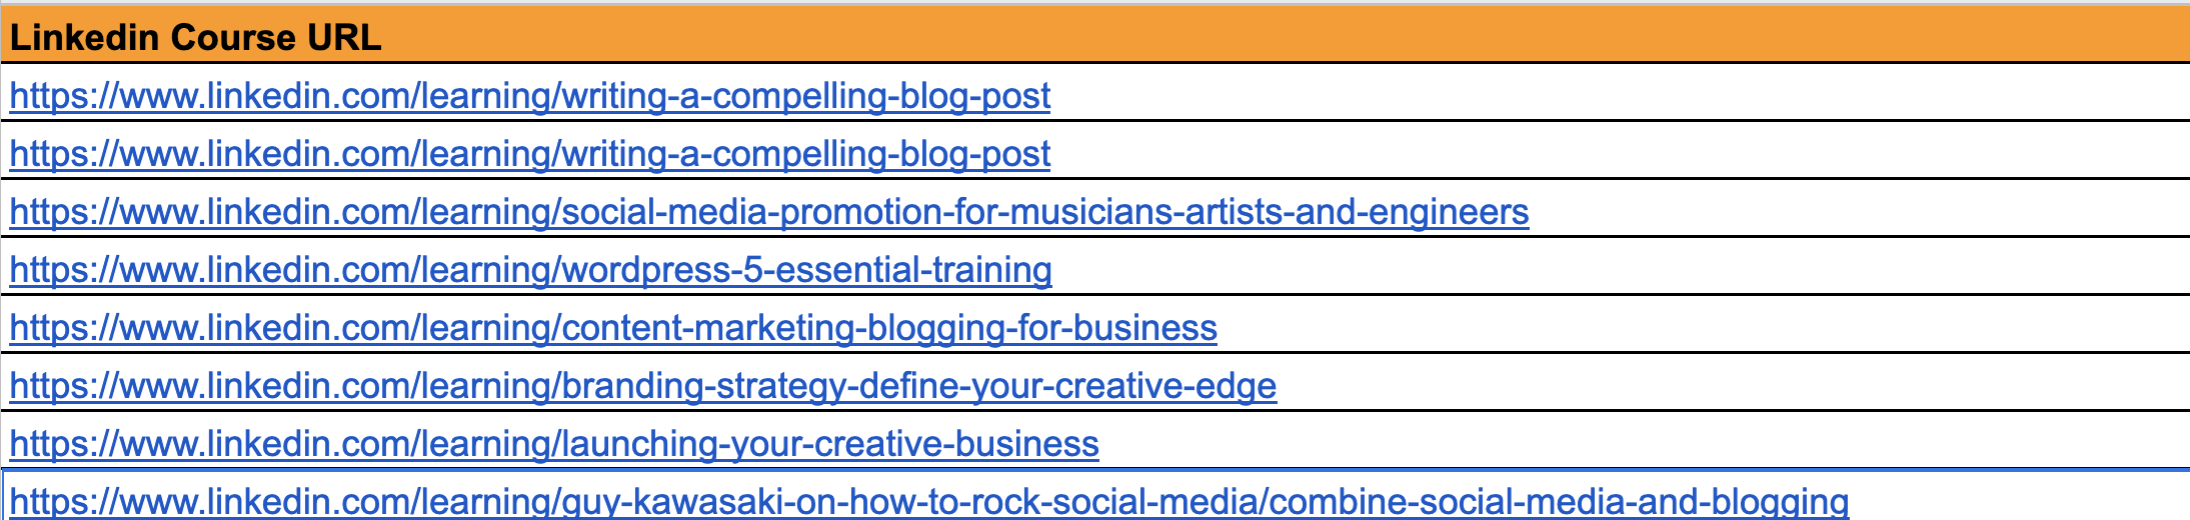 Extract-the-likers-of-a-LinkedIn-Learning-course-inputs